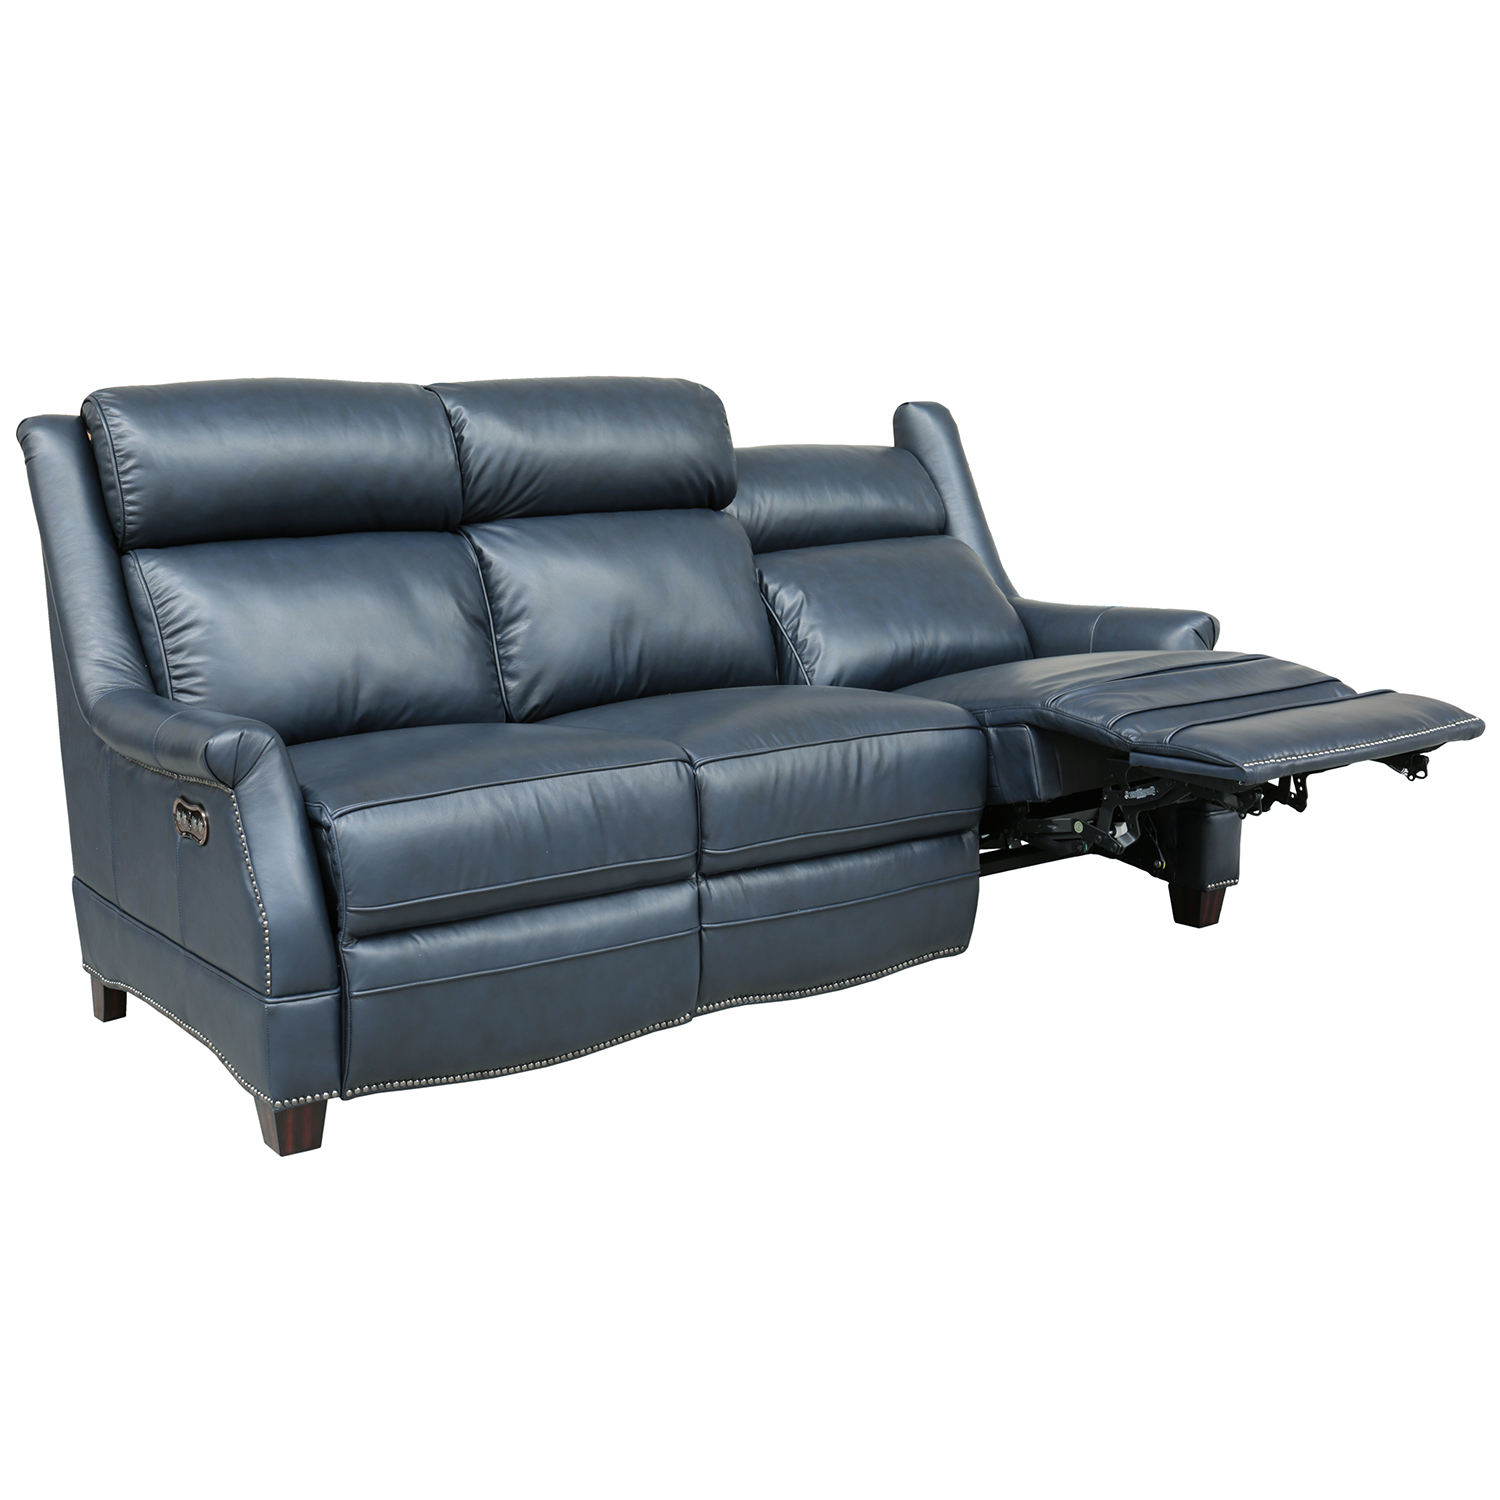 Incredible Warrendale Power Reclining Sofa In Shoreham Blue Leather By Barcalounger Alphanode Cool Chair Designs And Ideas Alphanodeonline